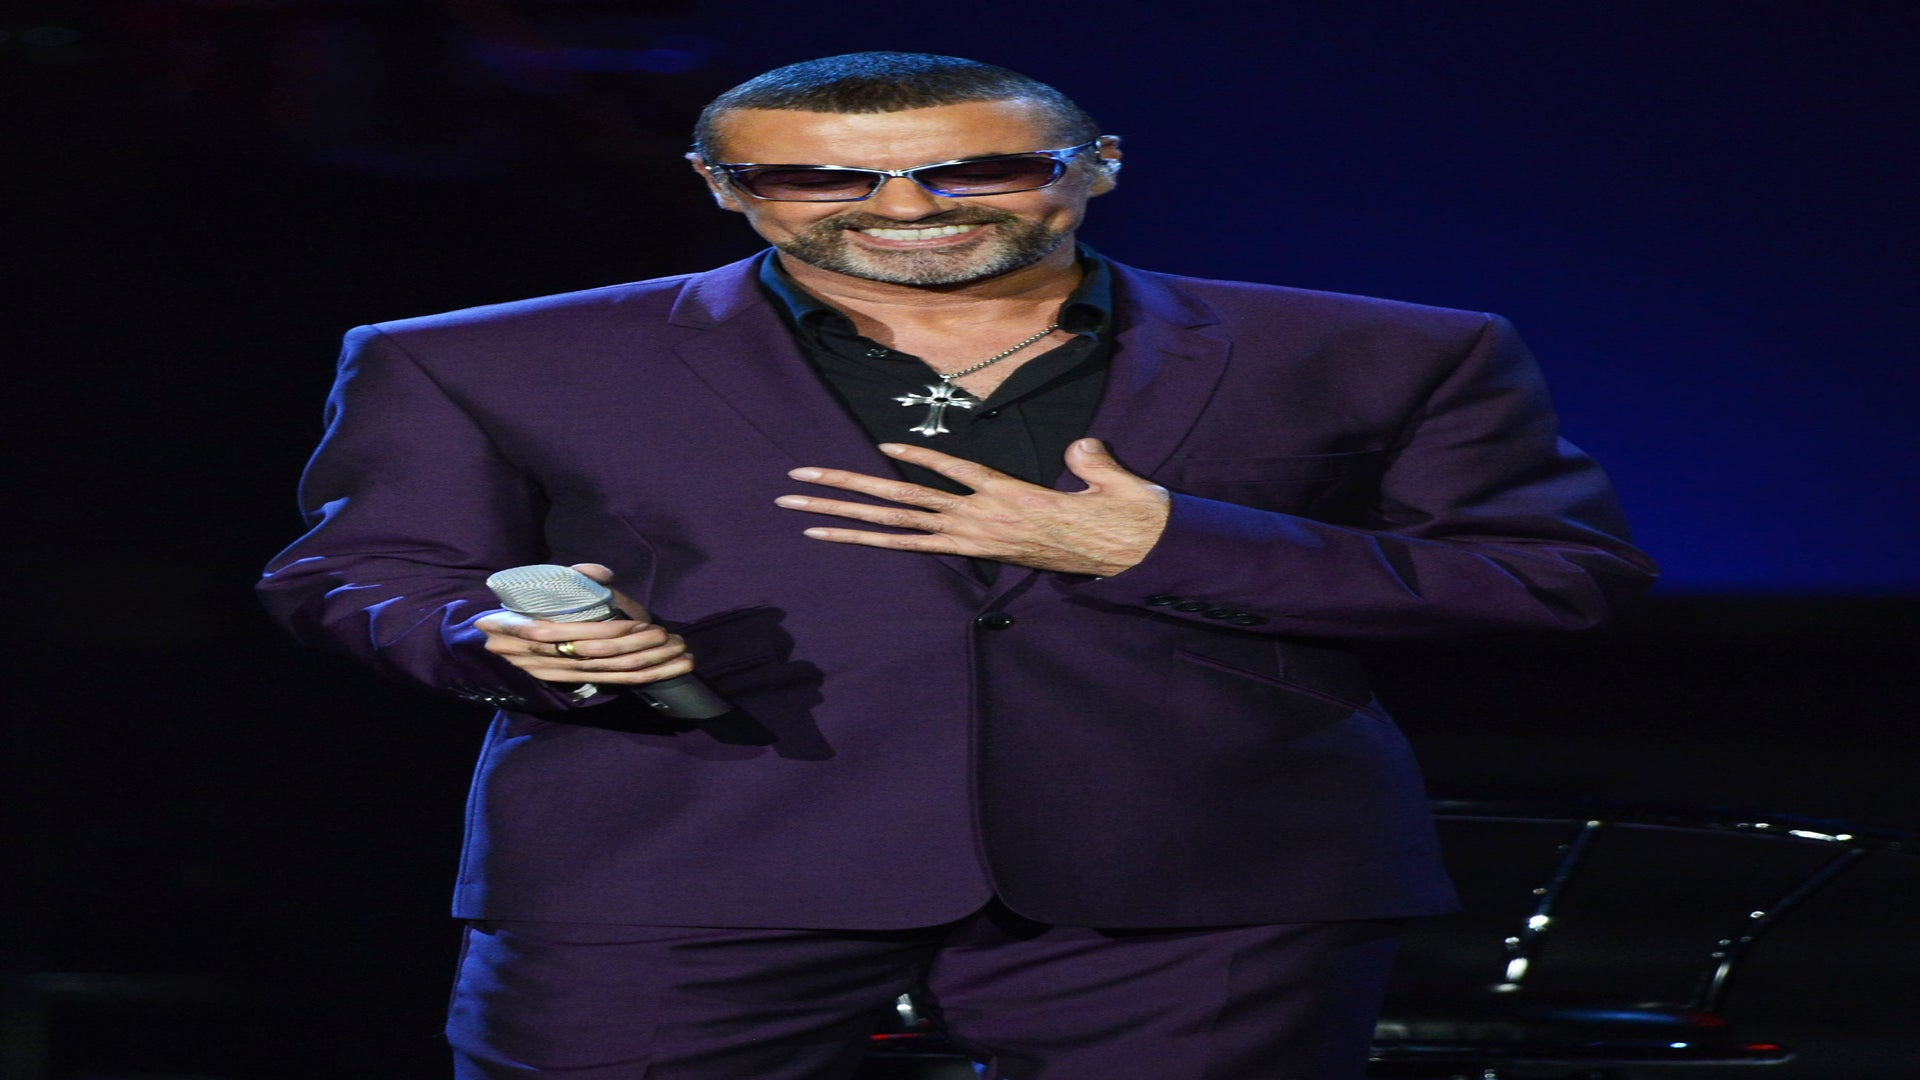 George Michael Dead at 53: Reports